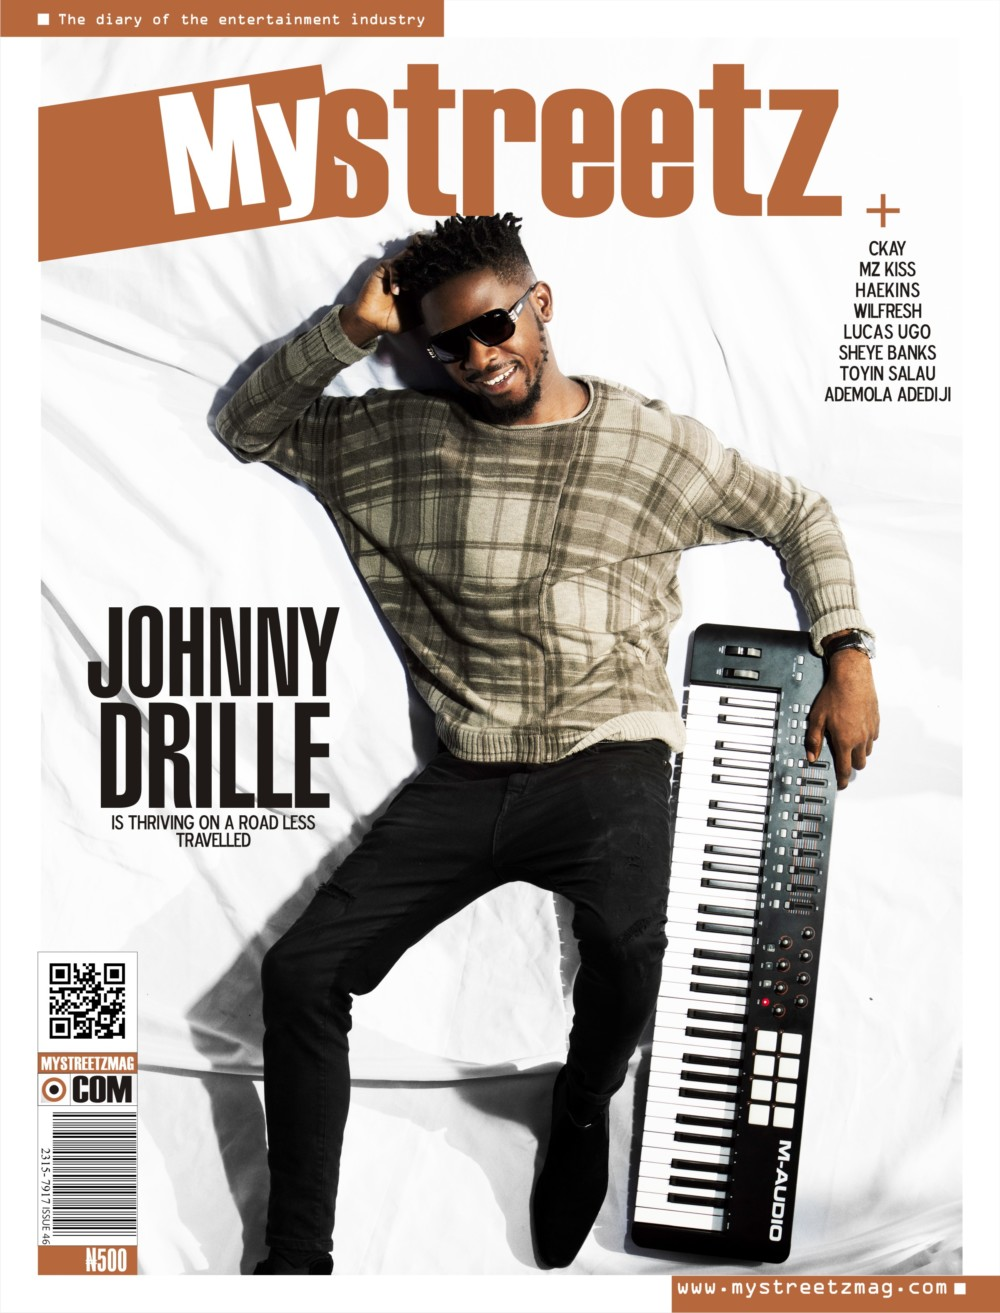 Johnny Drille covers latest issue of MyStreetz magazine